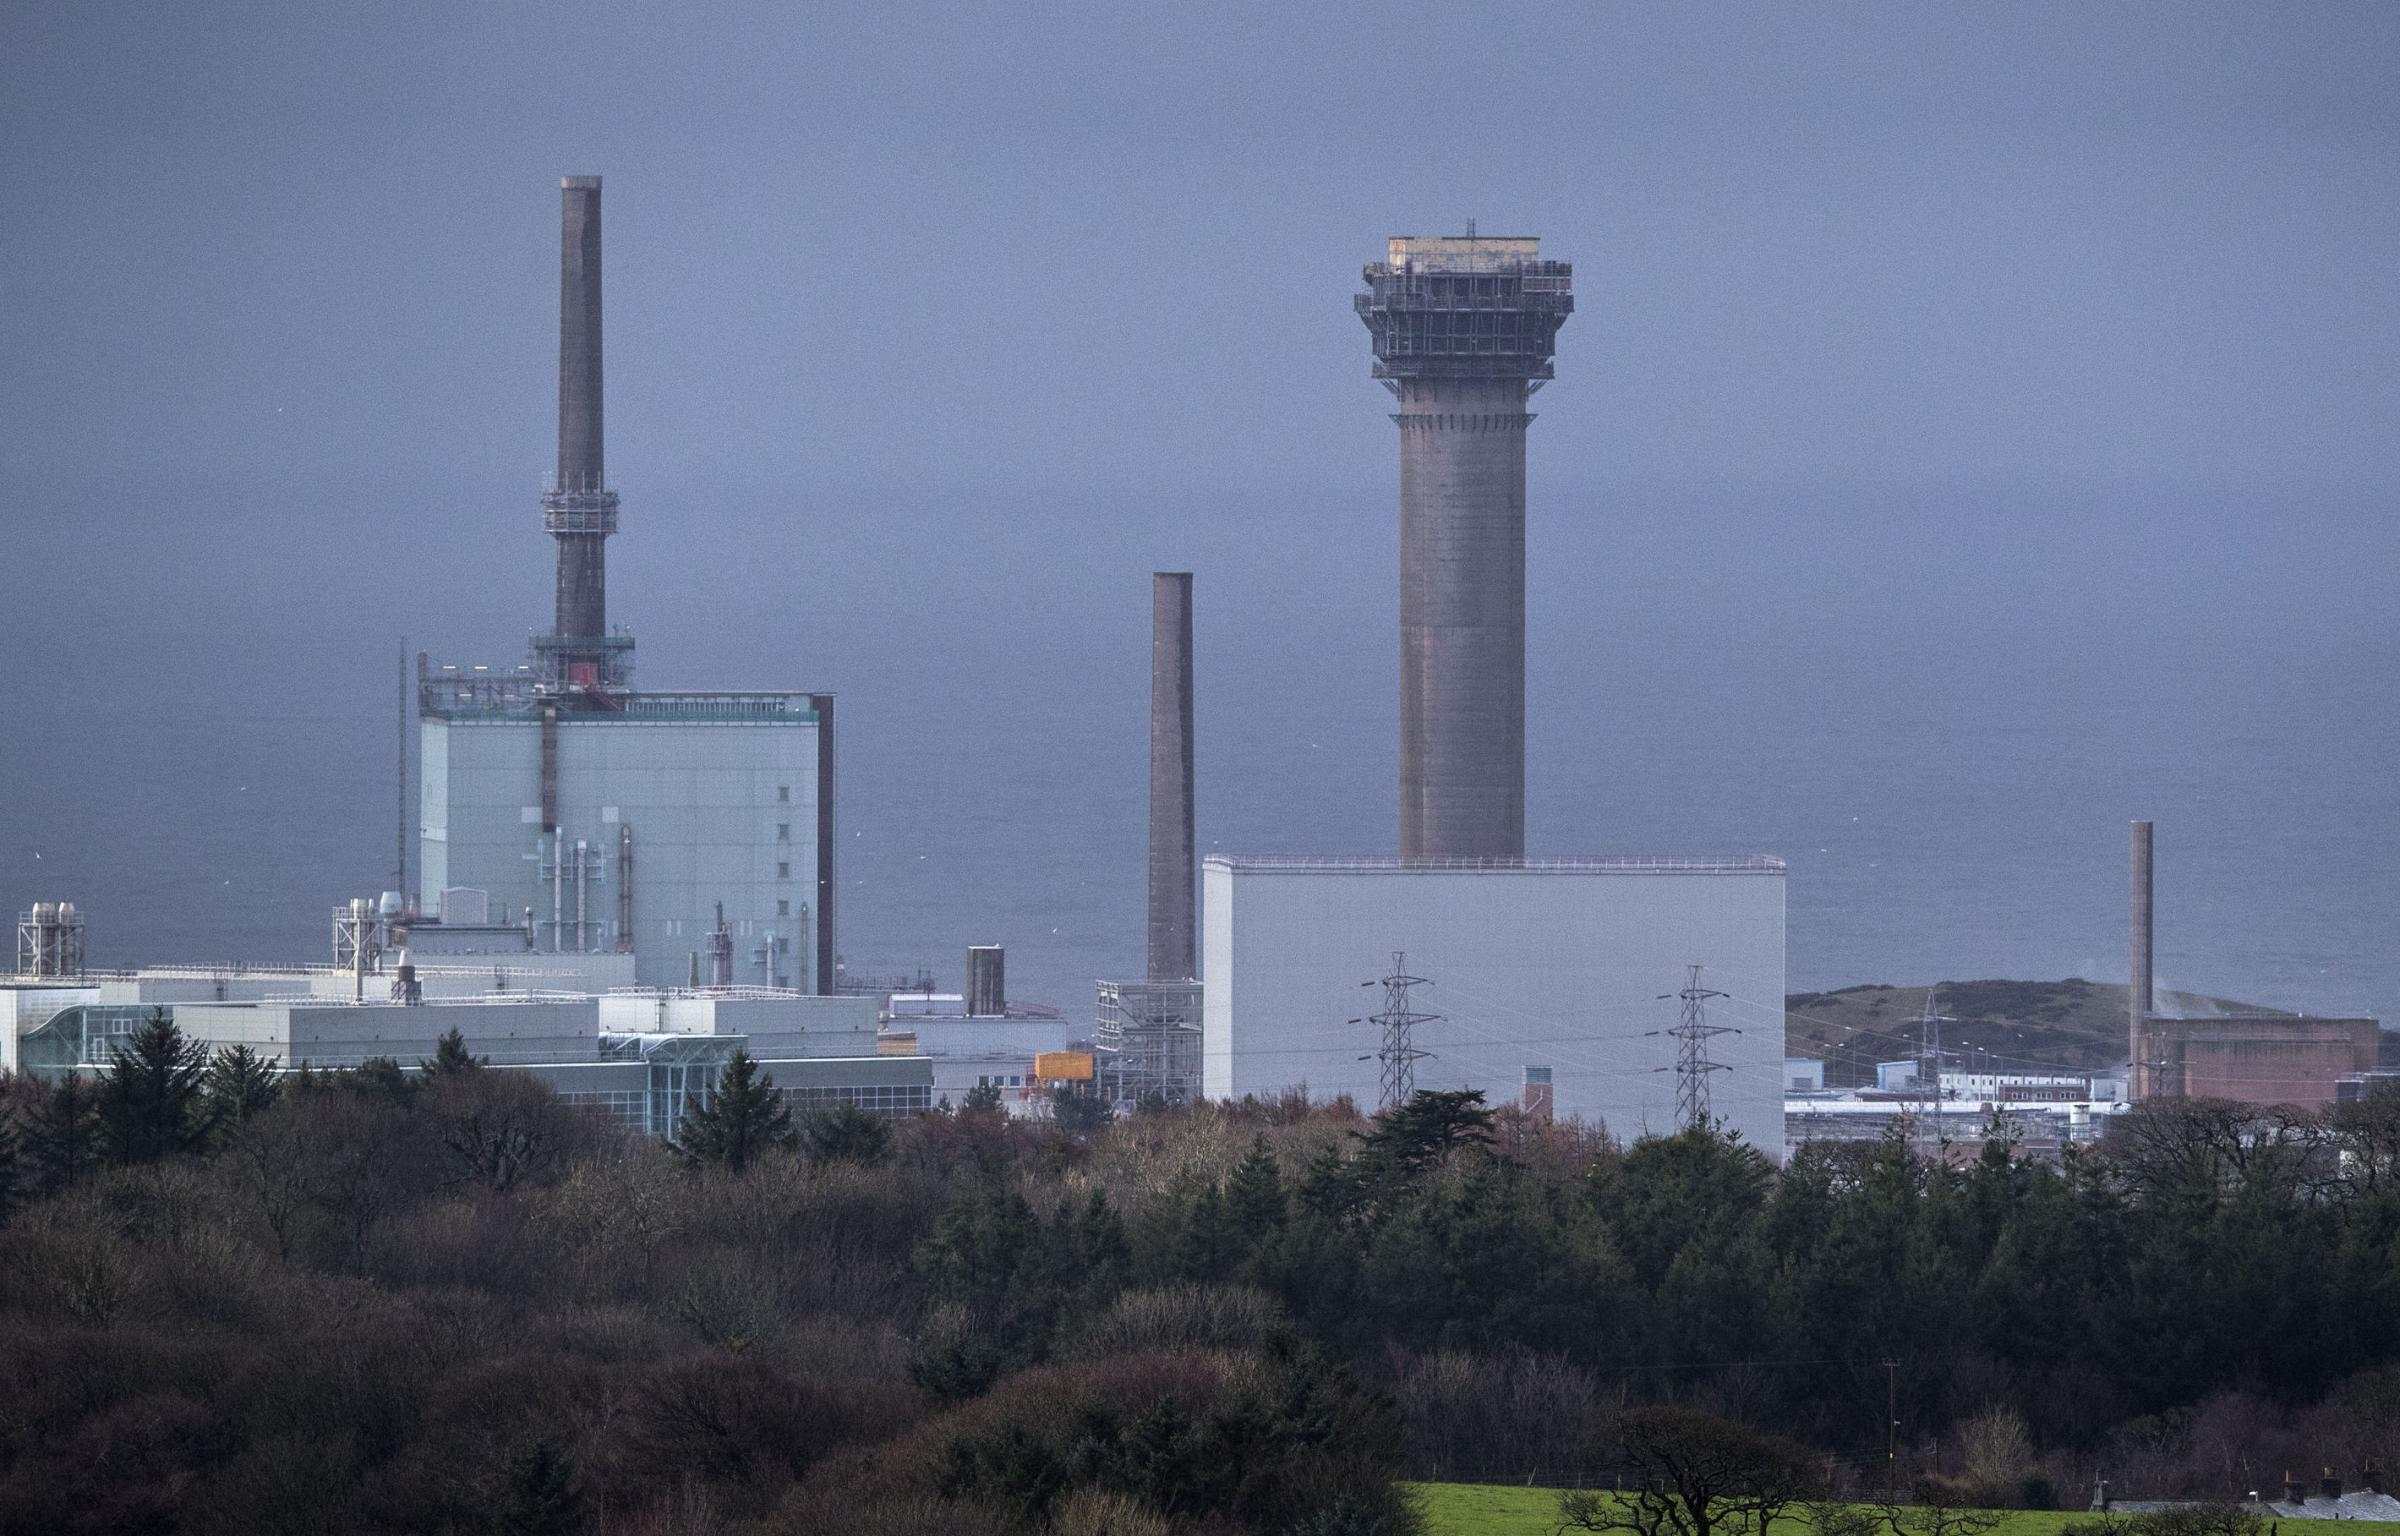 Sellafield Nuclear power plant in Cumbria. Photograph: PA